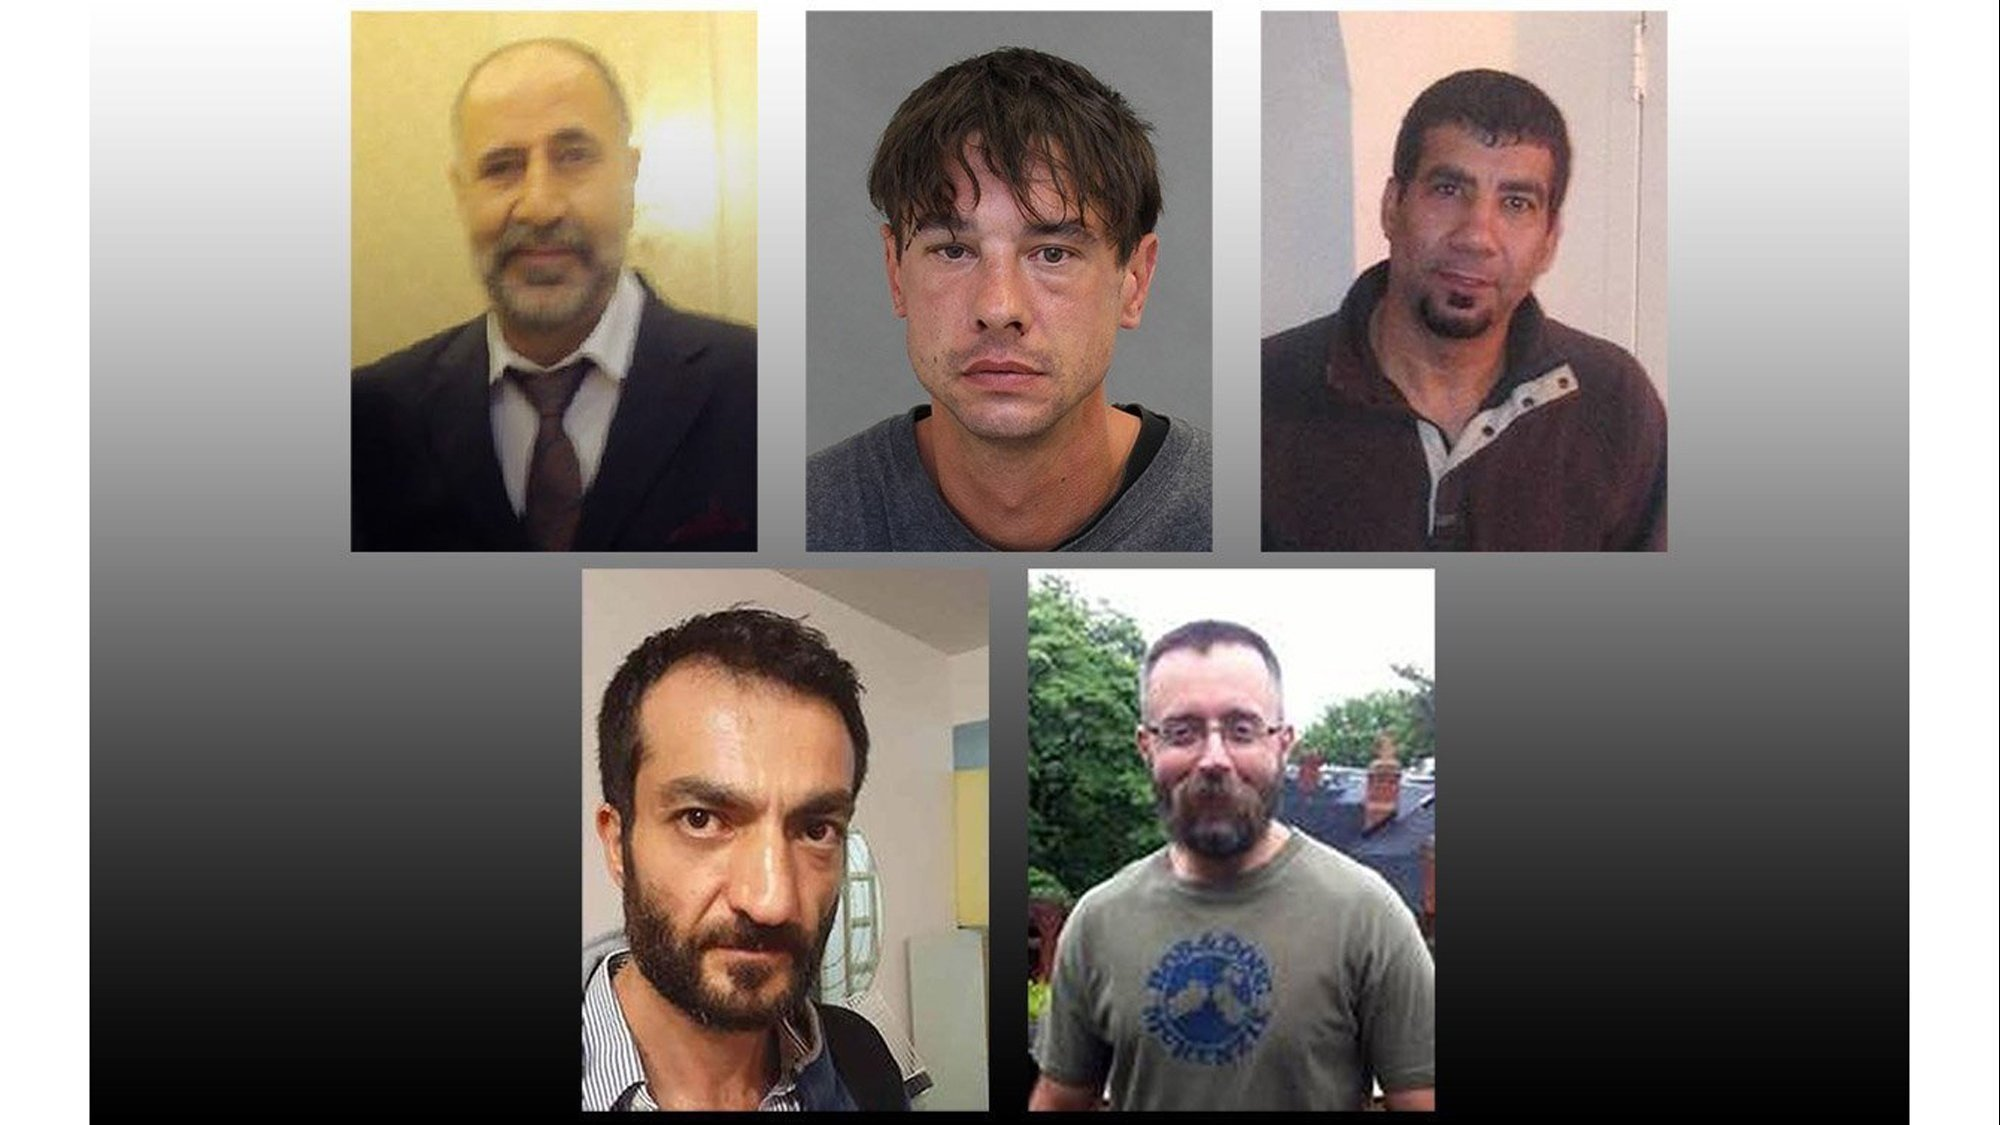 The five victims have been identified as from top left Majeed Kayhan 58 Dean Lisowick 47 Soroush Mahmudi 50 Selim Esen 44 and Andrew Kinsman 49 according to Toronto Police Service